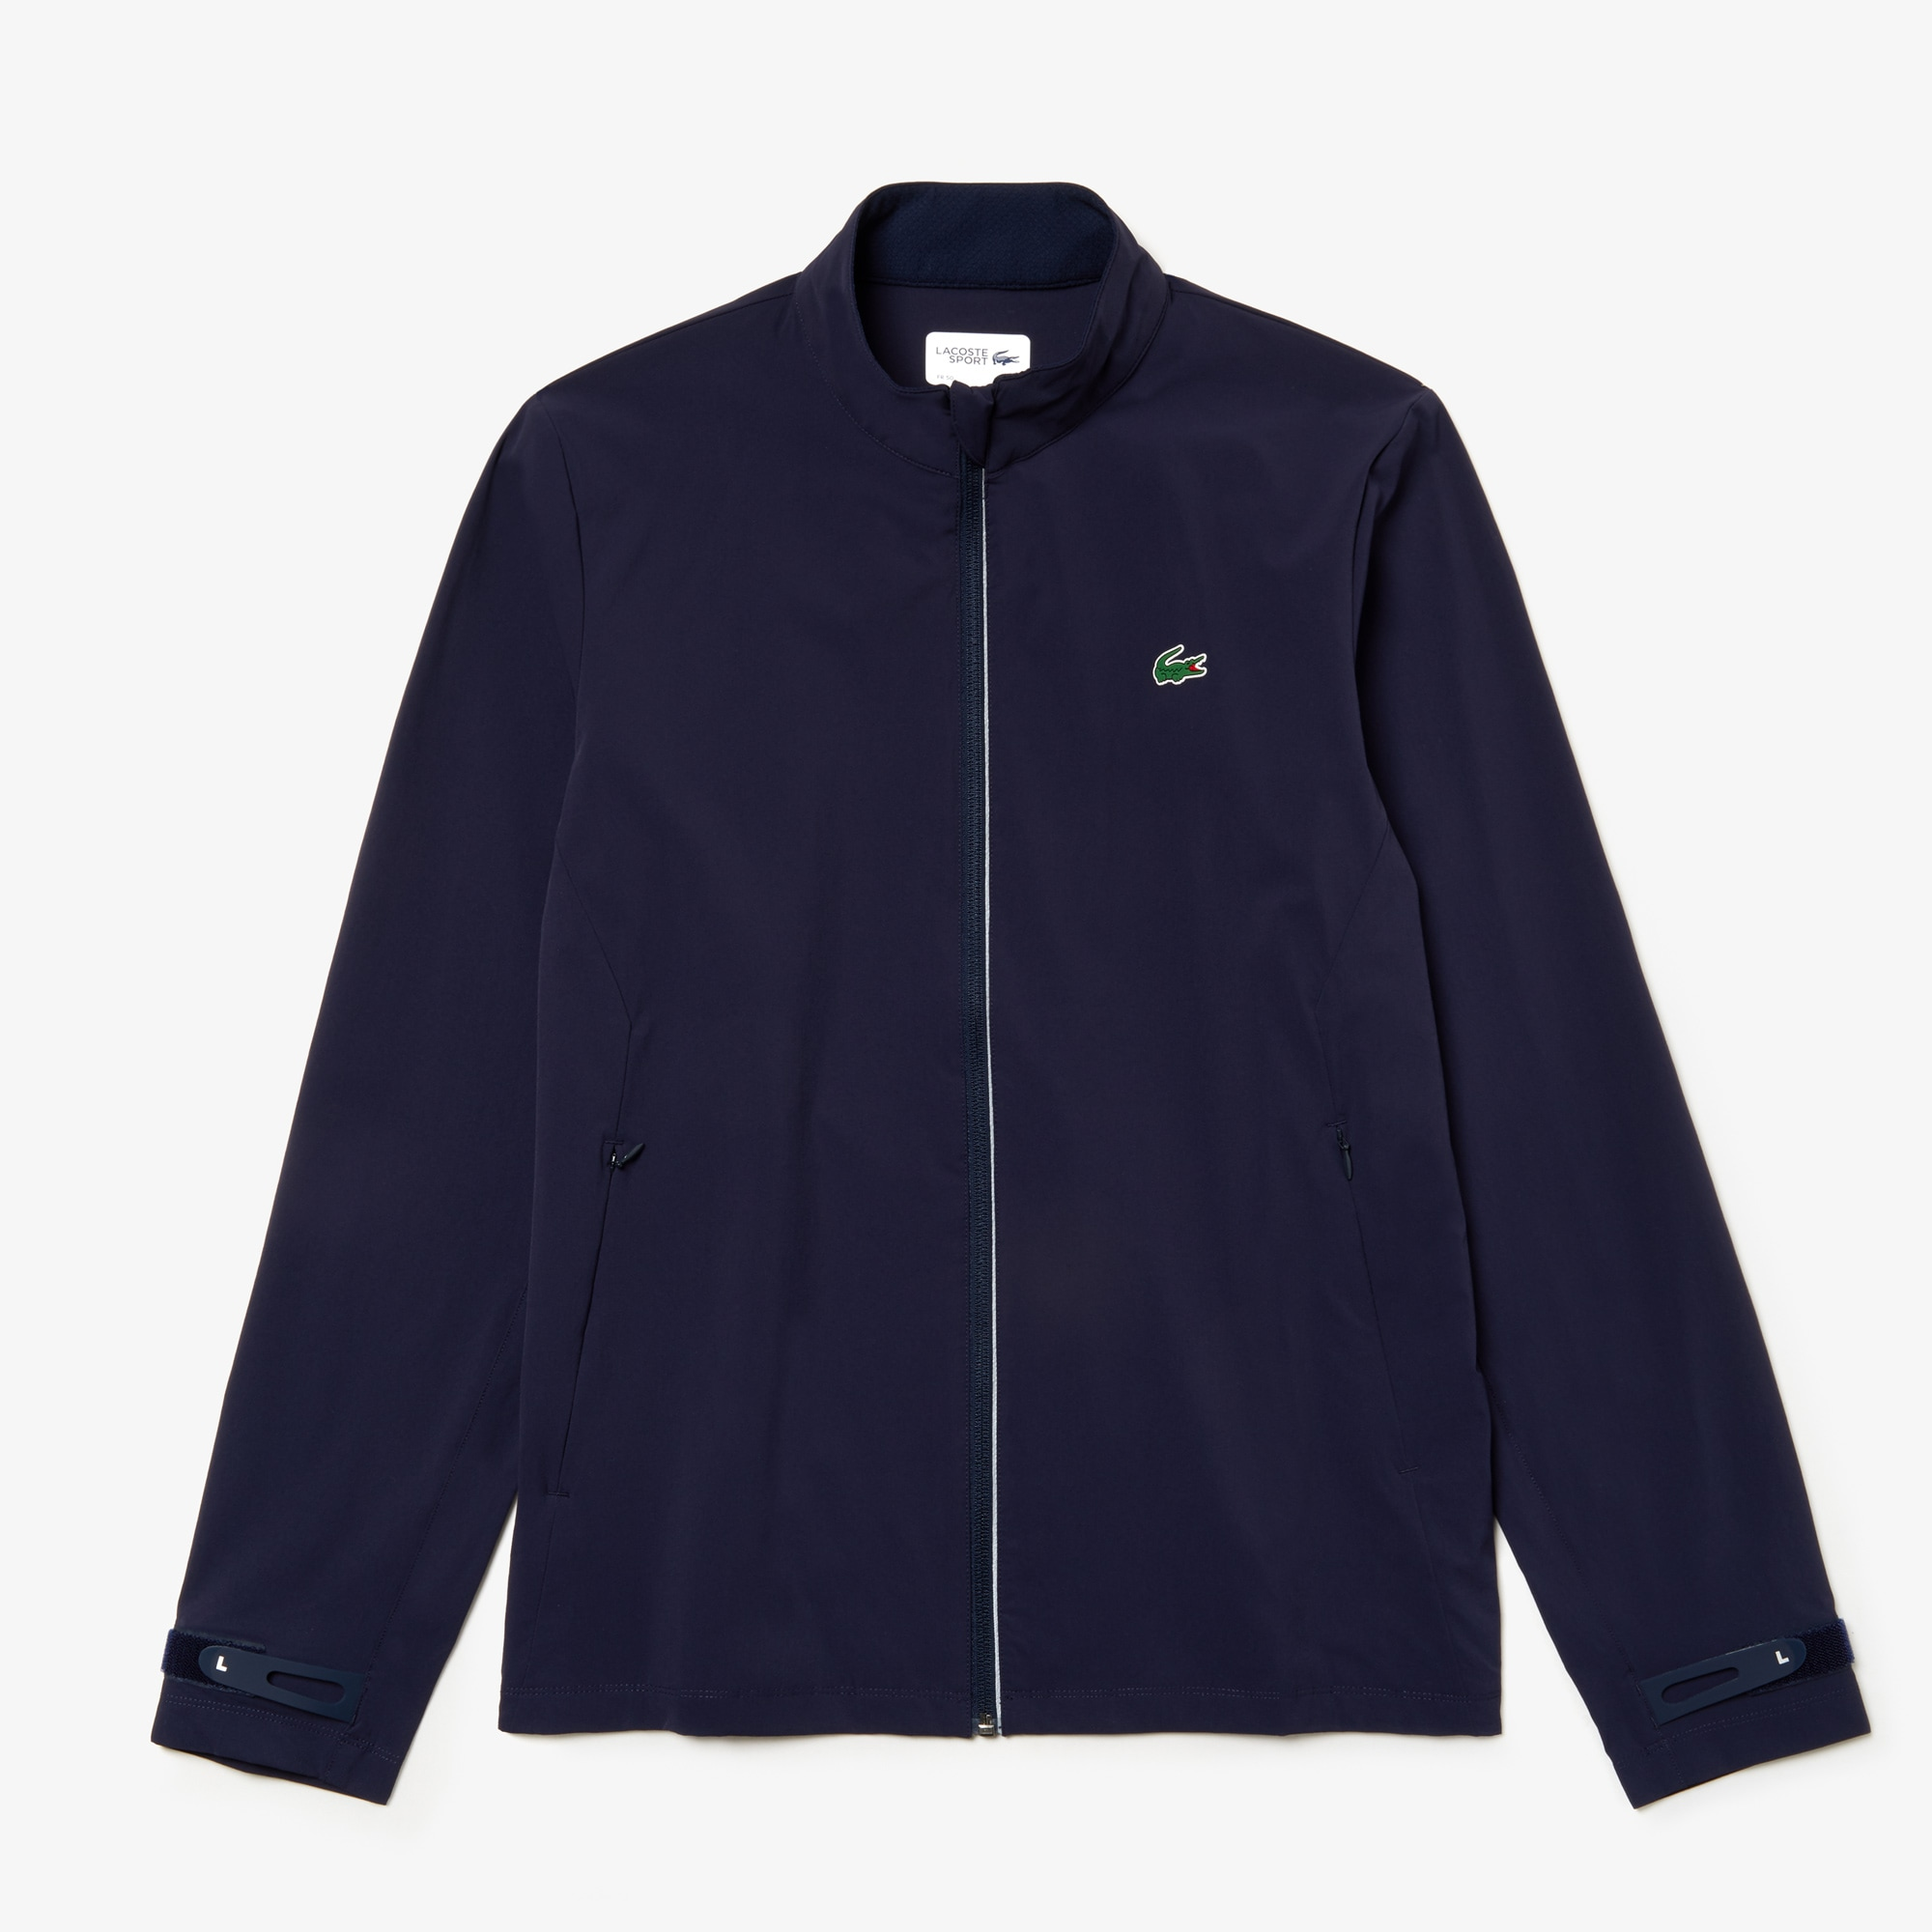 Men's Lacoste SPORT Water-Resistant Printed Zip Golf Jacket